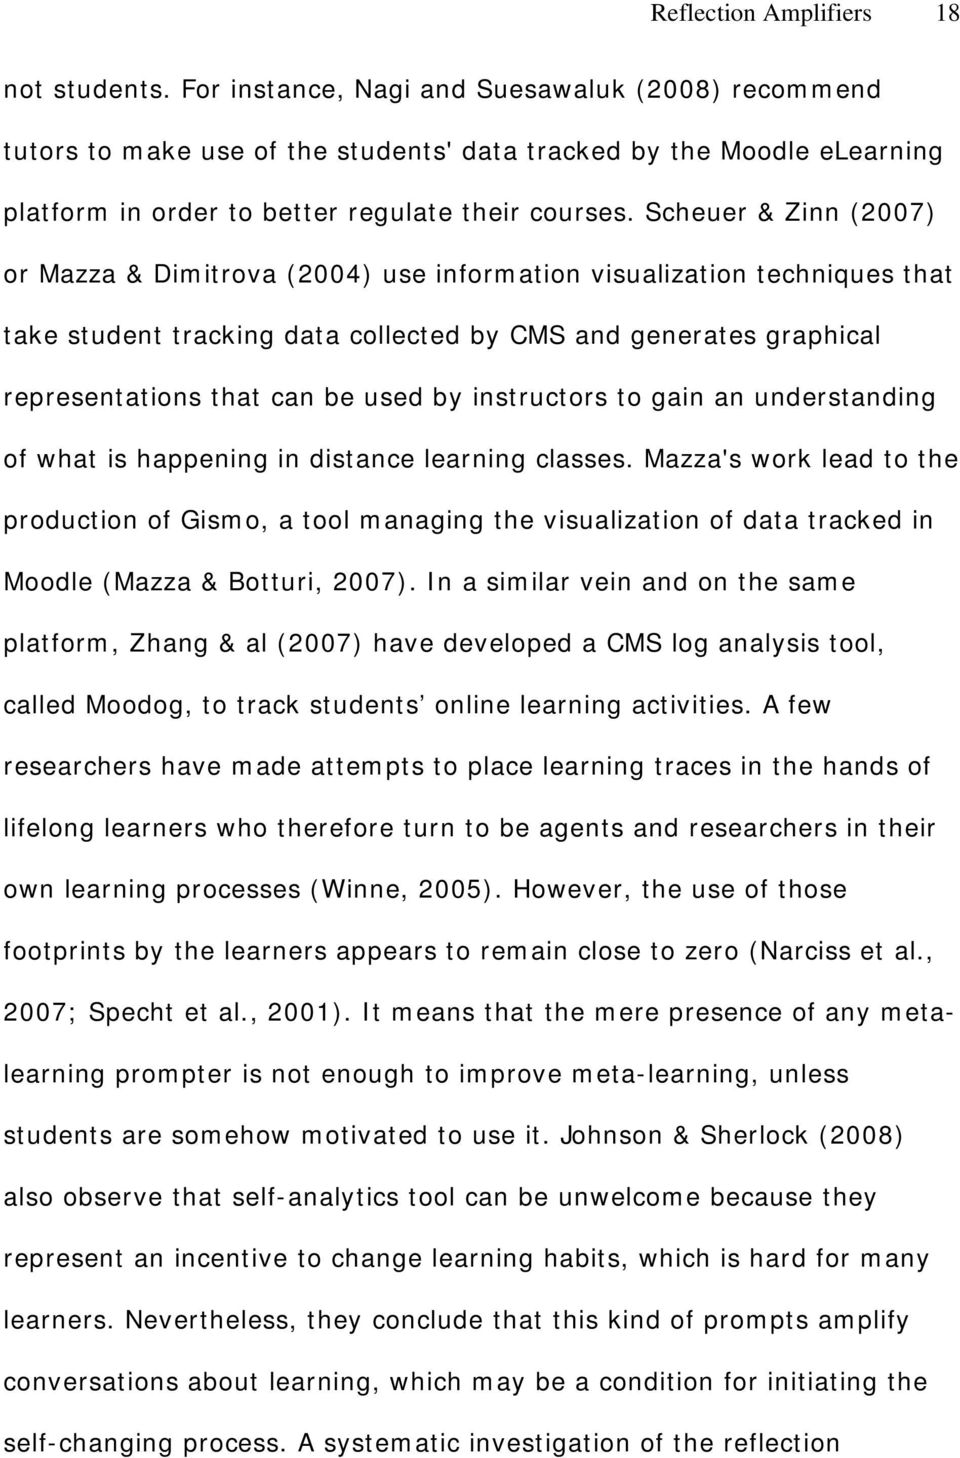 Scheuer & Zinn (2007) or Mazza & Dimitrova (2004) use information visualization techniques that take student tracking data collected by CMS and generates graphical representations that can be used by